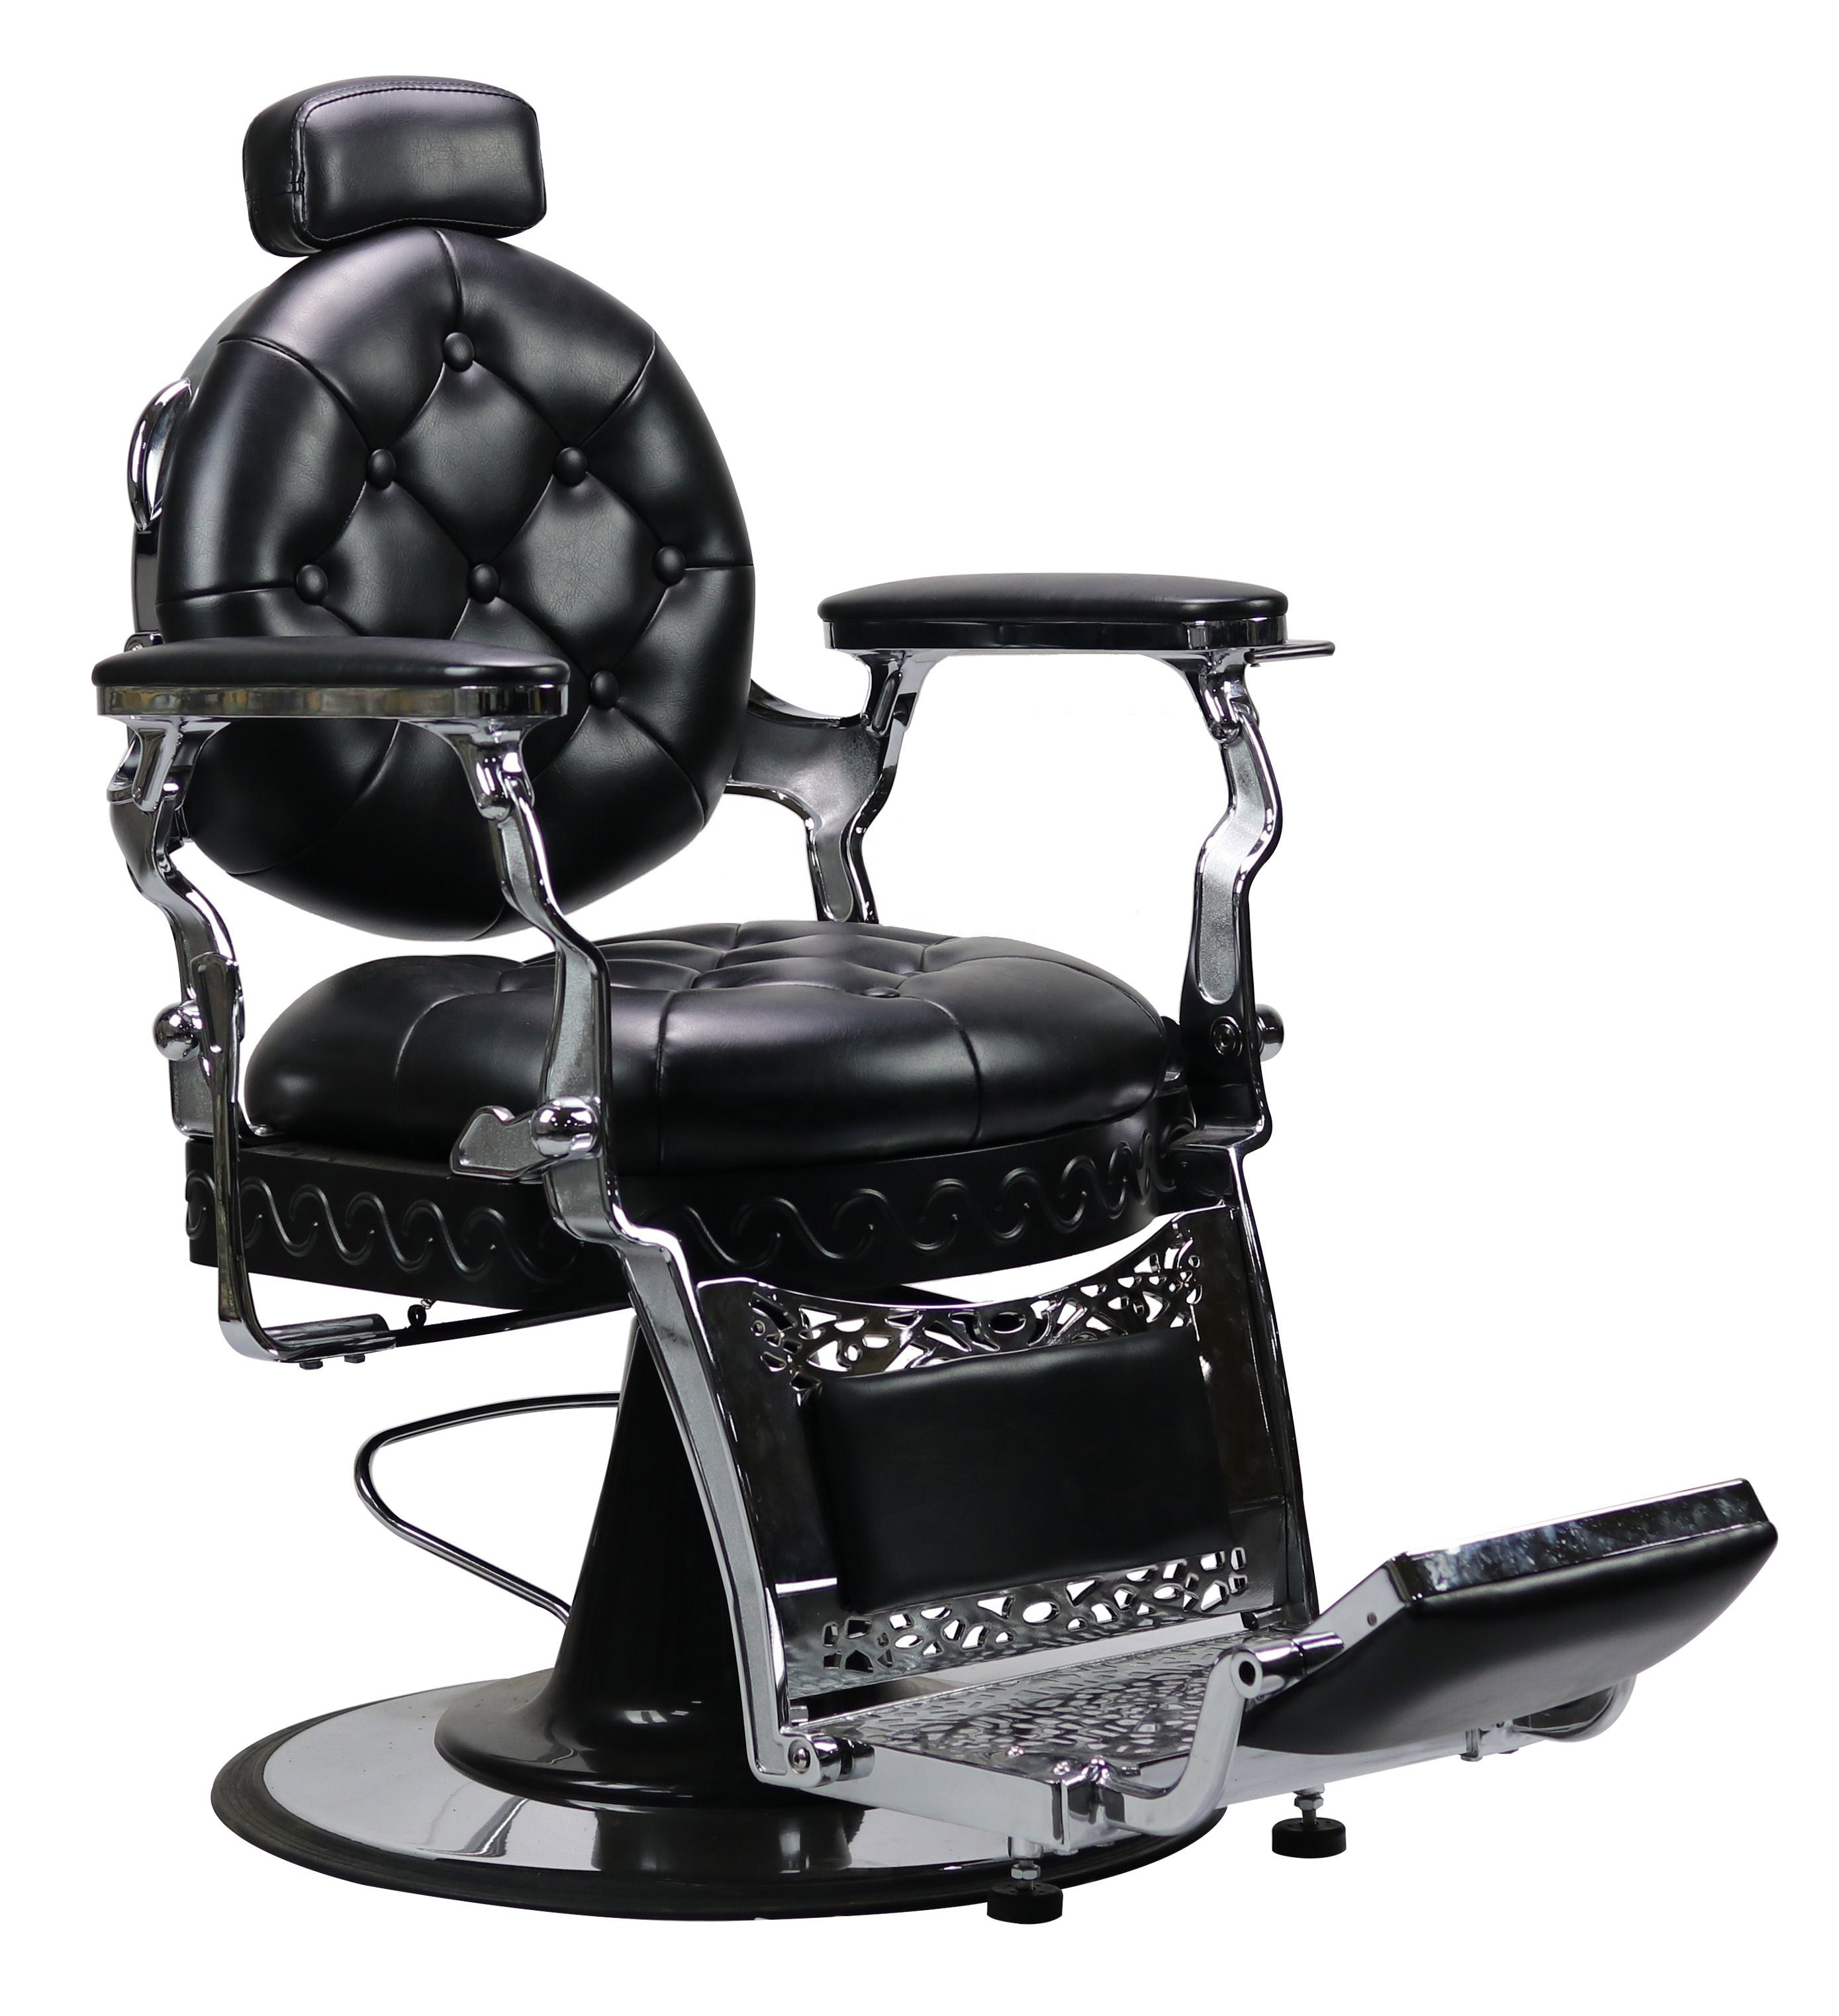 DTY antique barber chair for beauty salon furniture and barber shop factory supplier